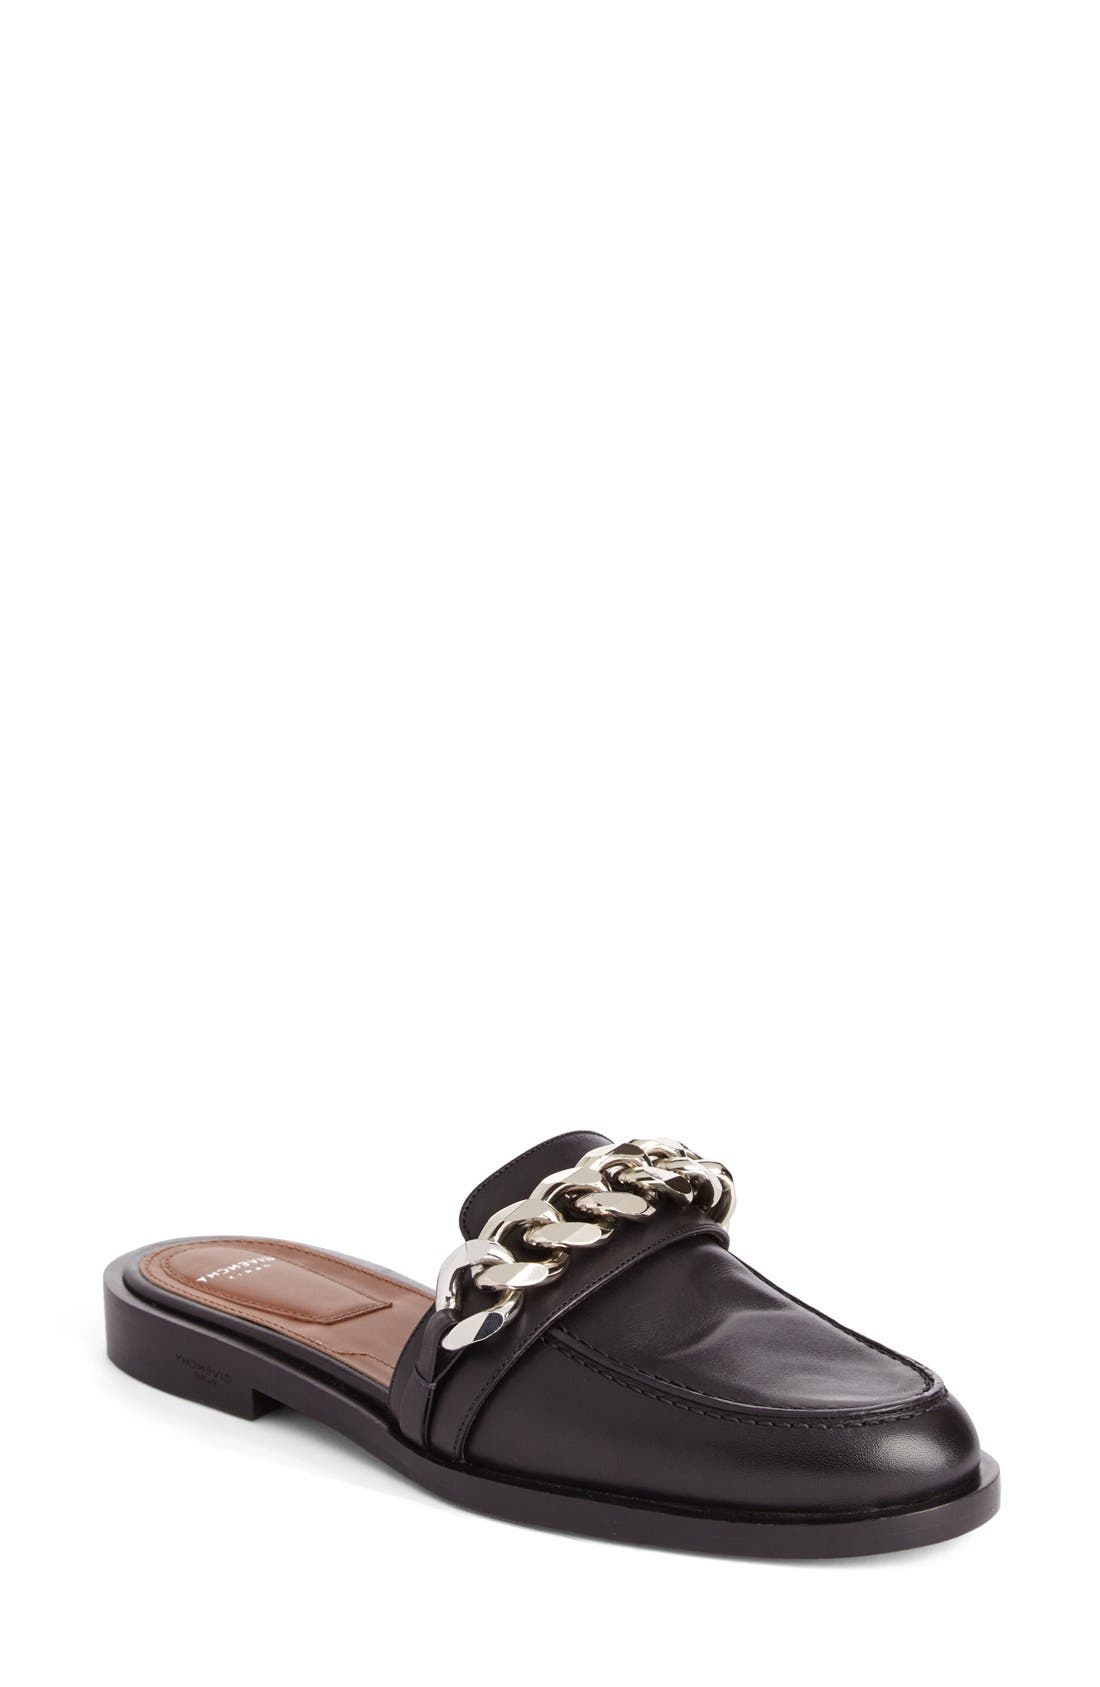 Givenchy Chain Strap Loafer Mule (Women)